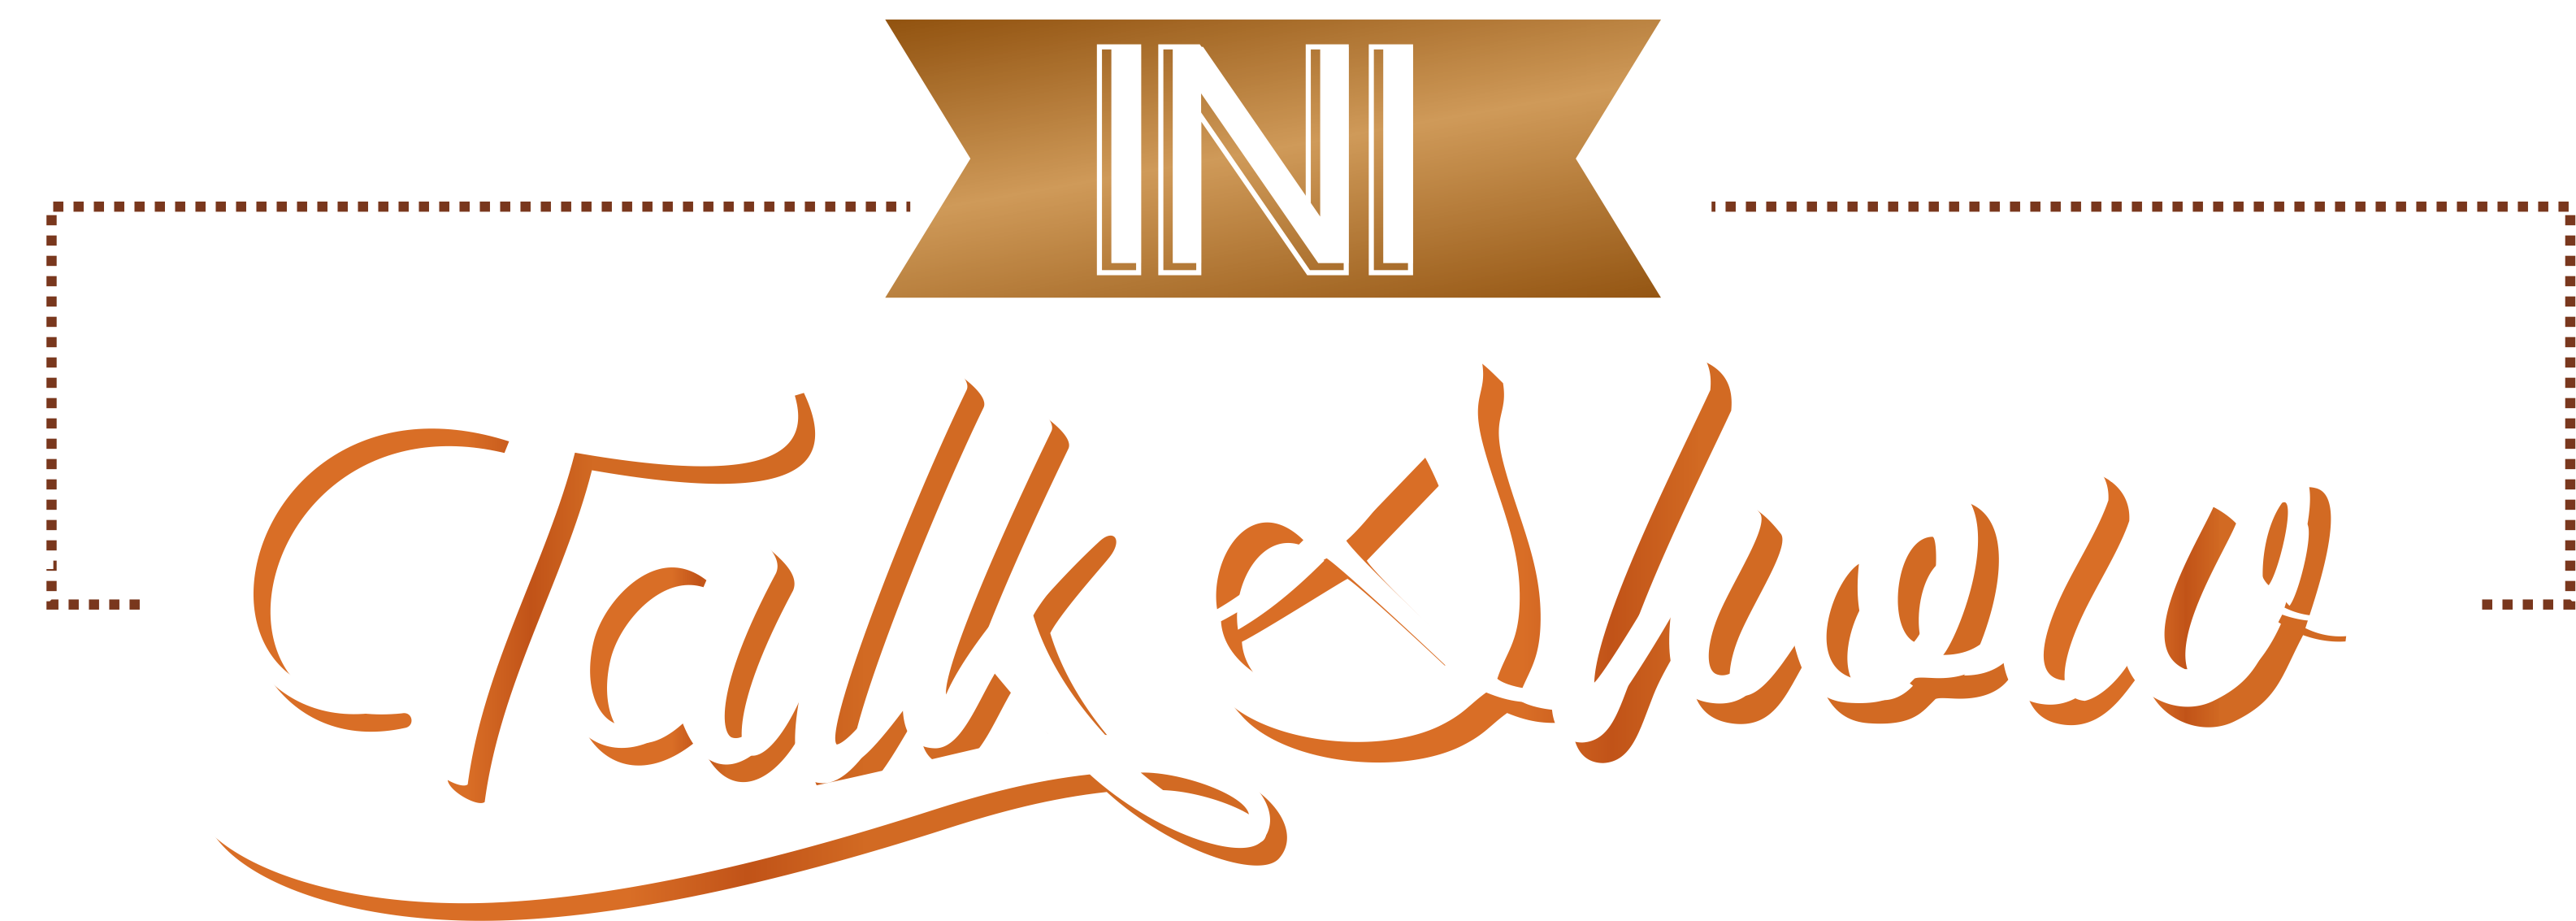 Ini Talk Show Logo Vector by AnotherAizen14